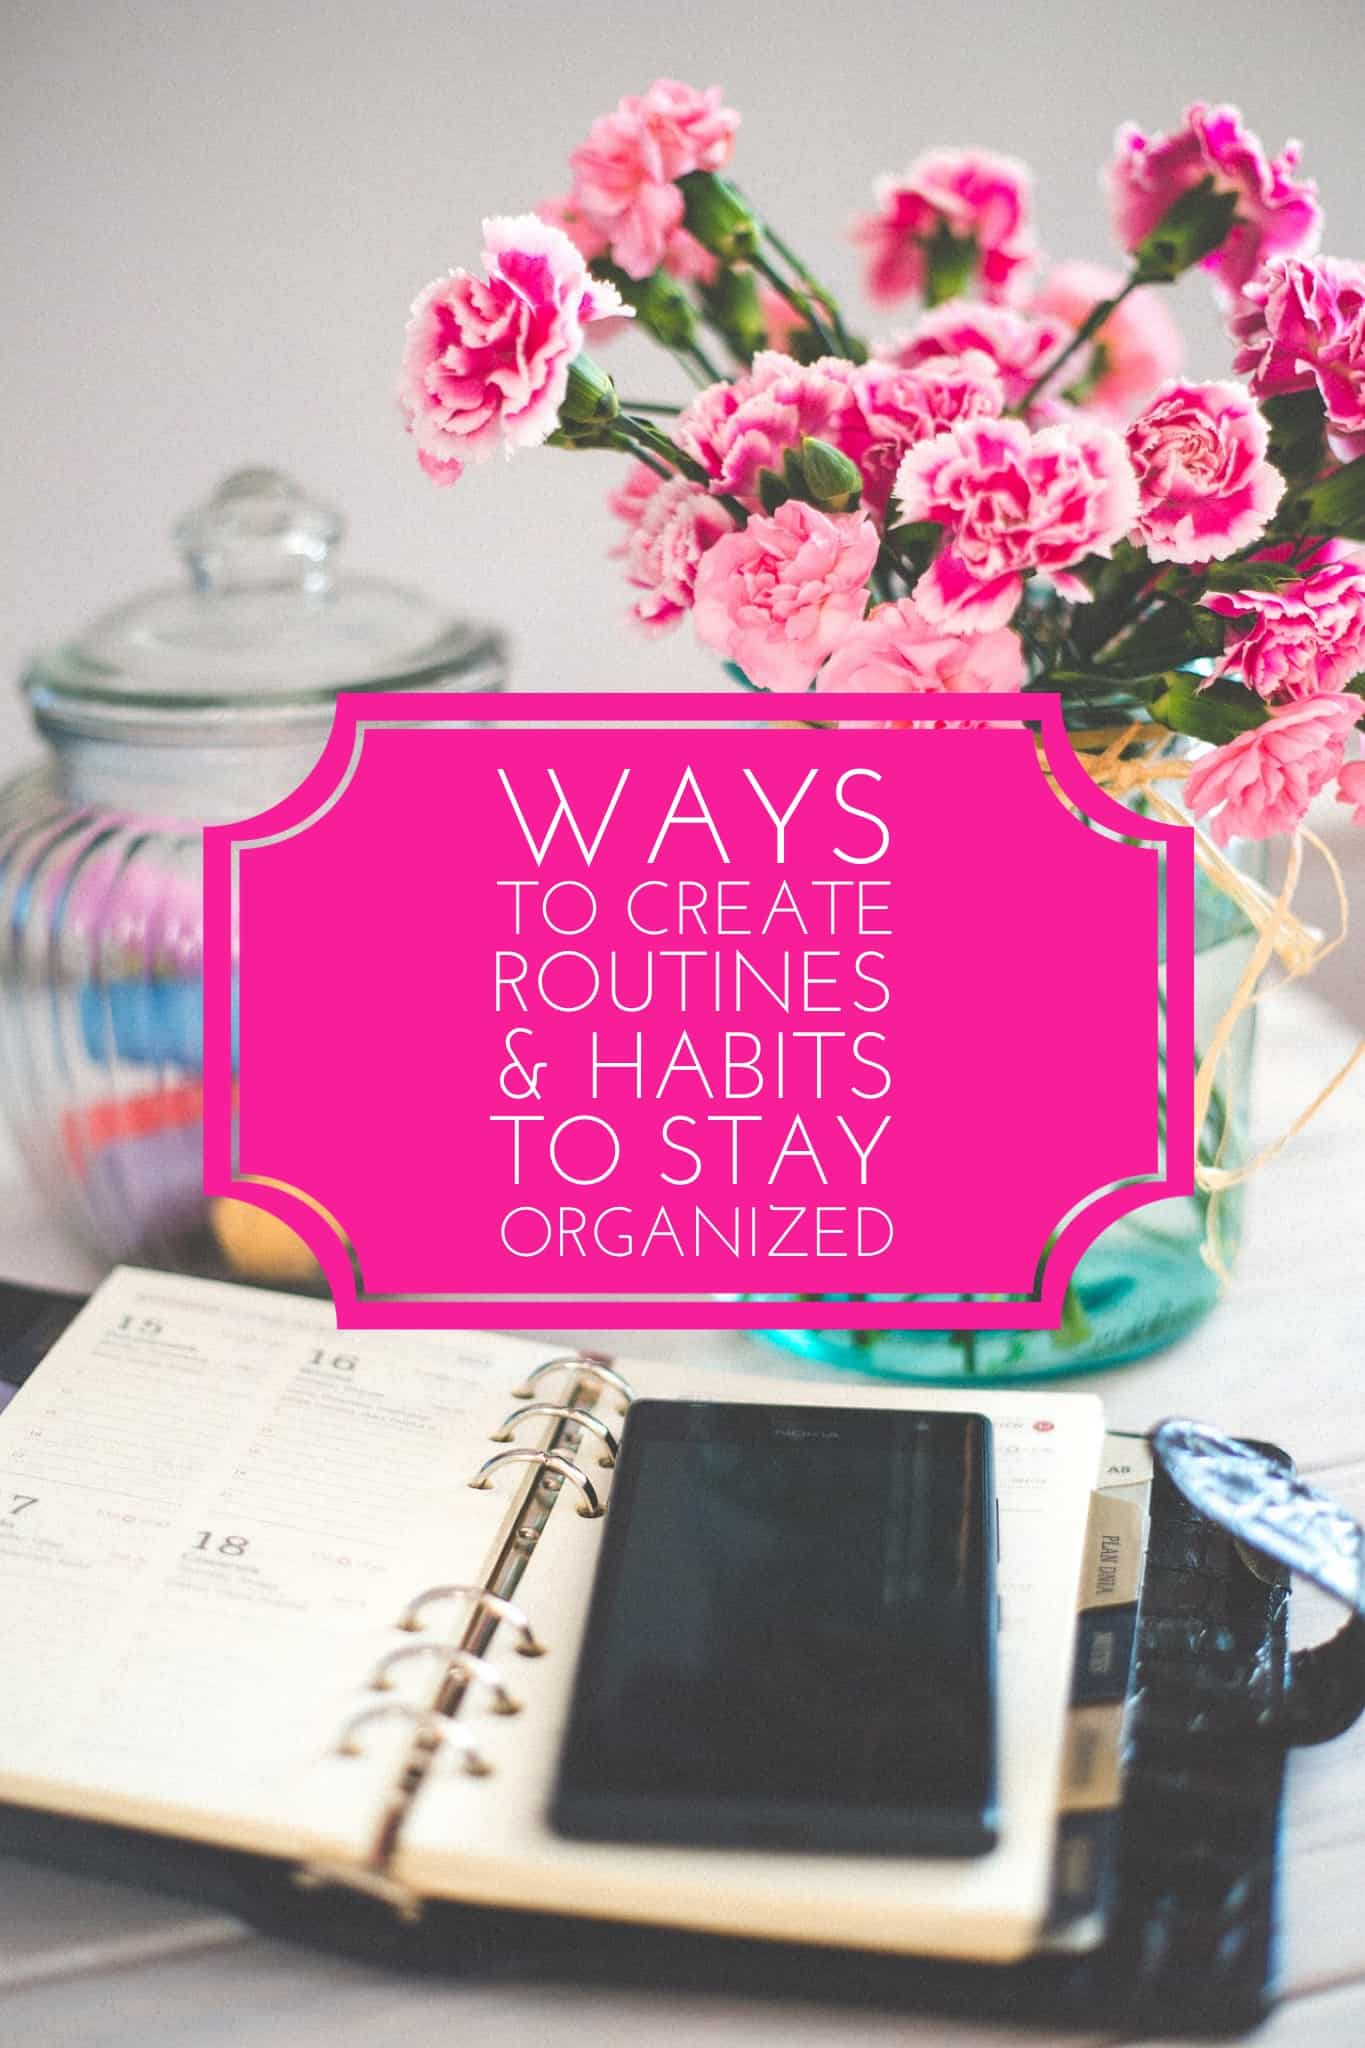 Ways to Create Routines and Habits to Stay Organized Title